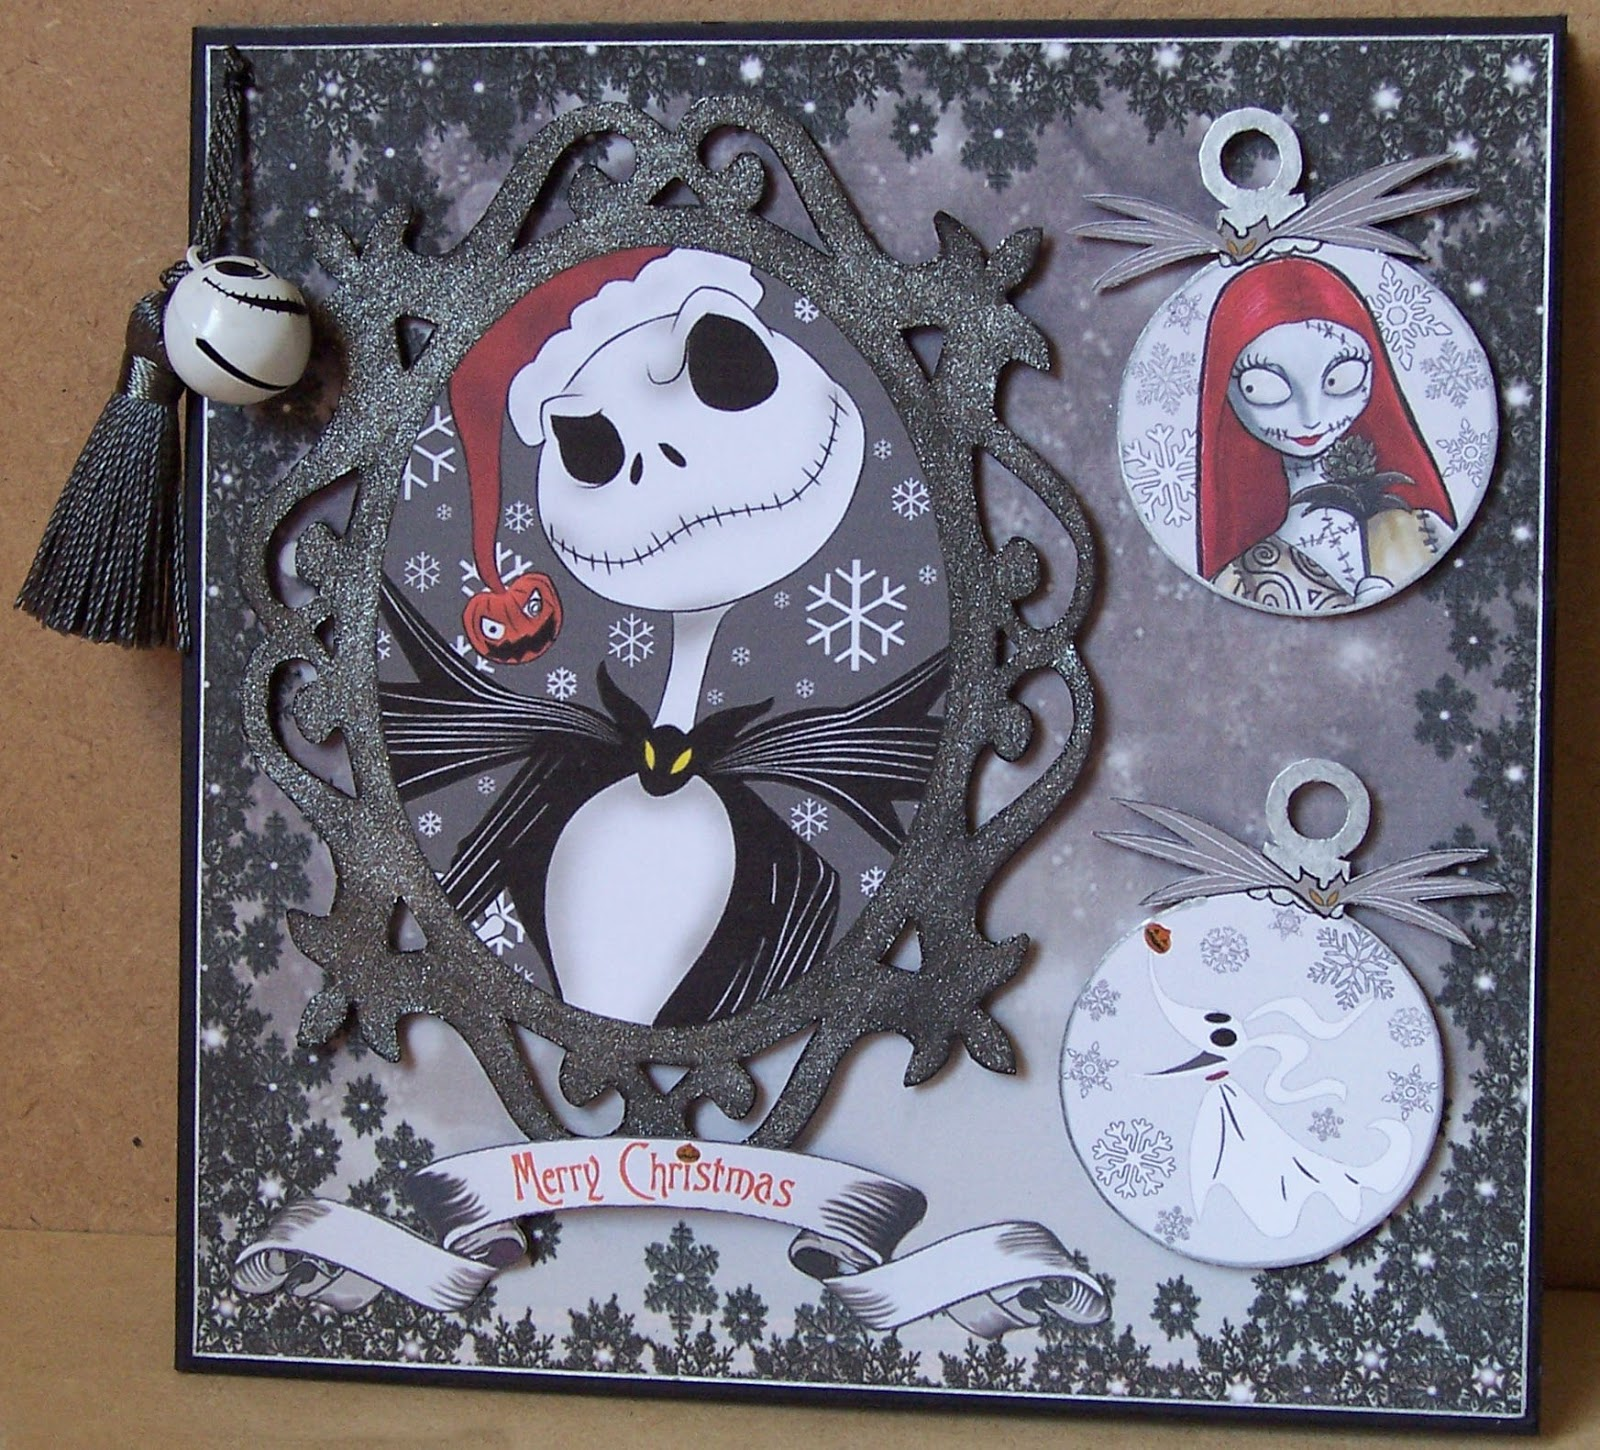 Whitch Craft: Nightmare Before Christmas Christmas Card